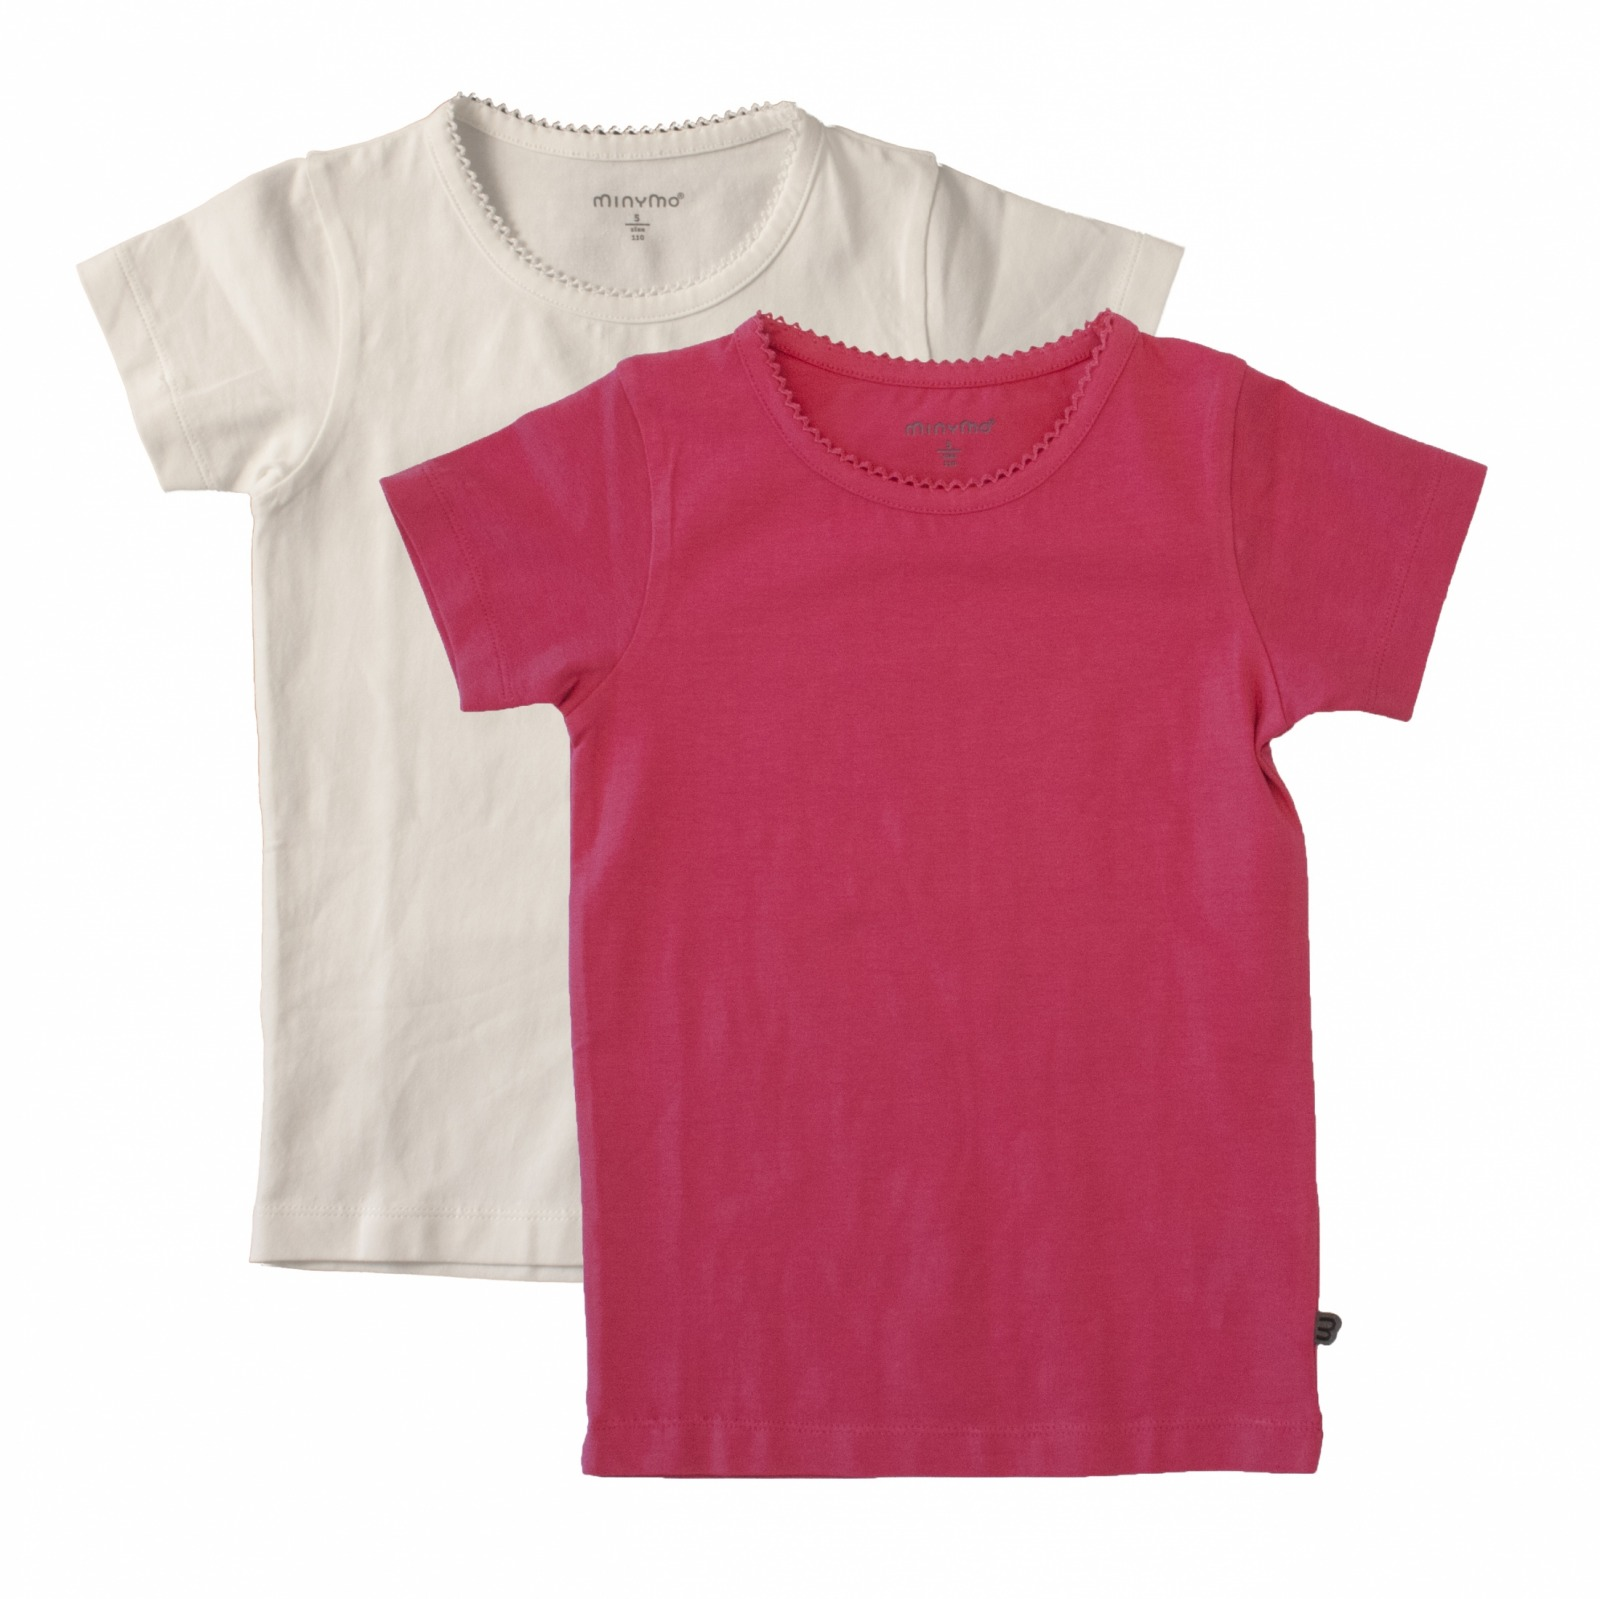 MINYMO T-Shirt Basic pink 2er Pack